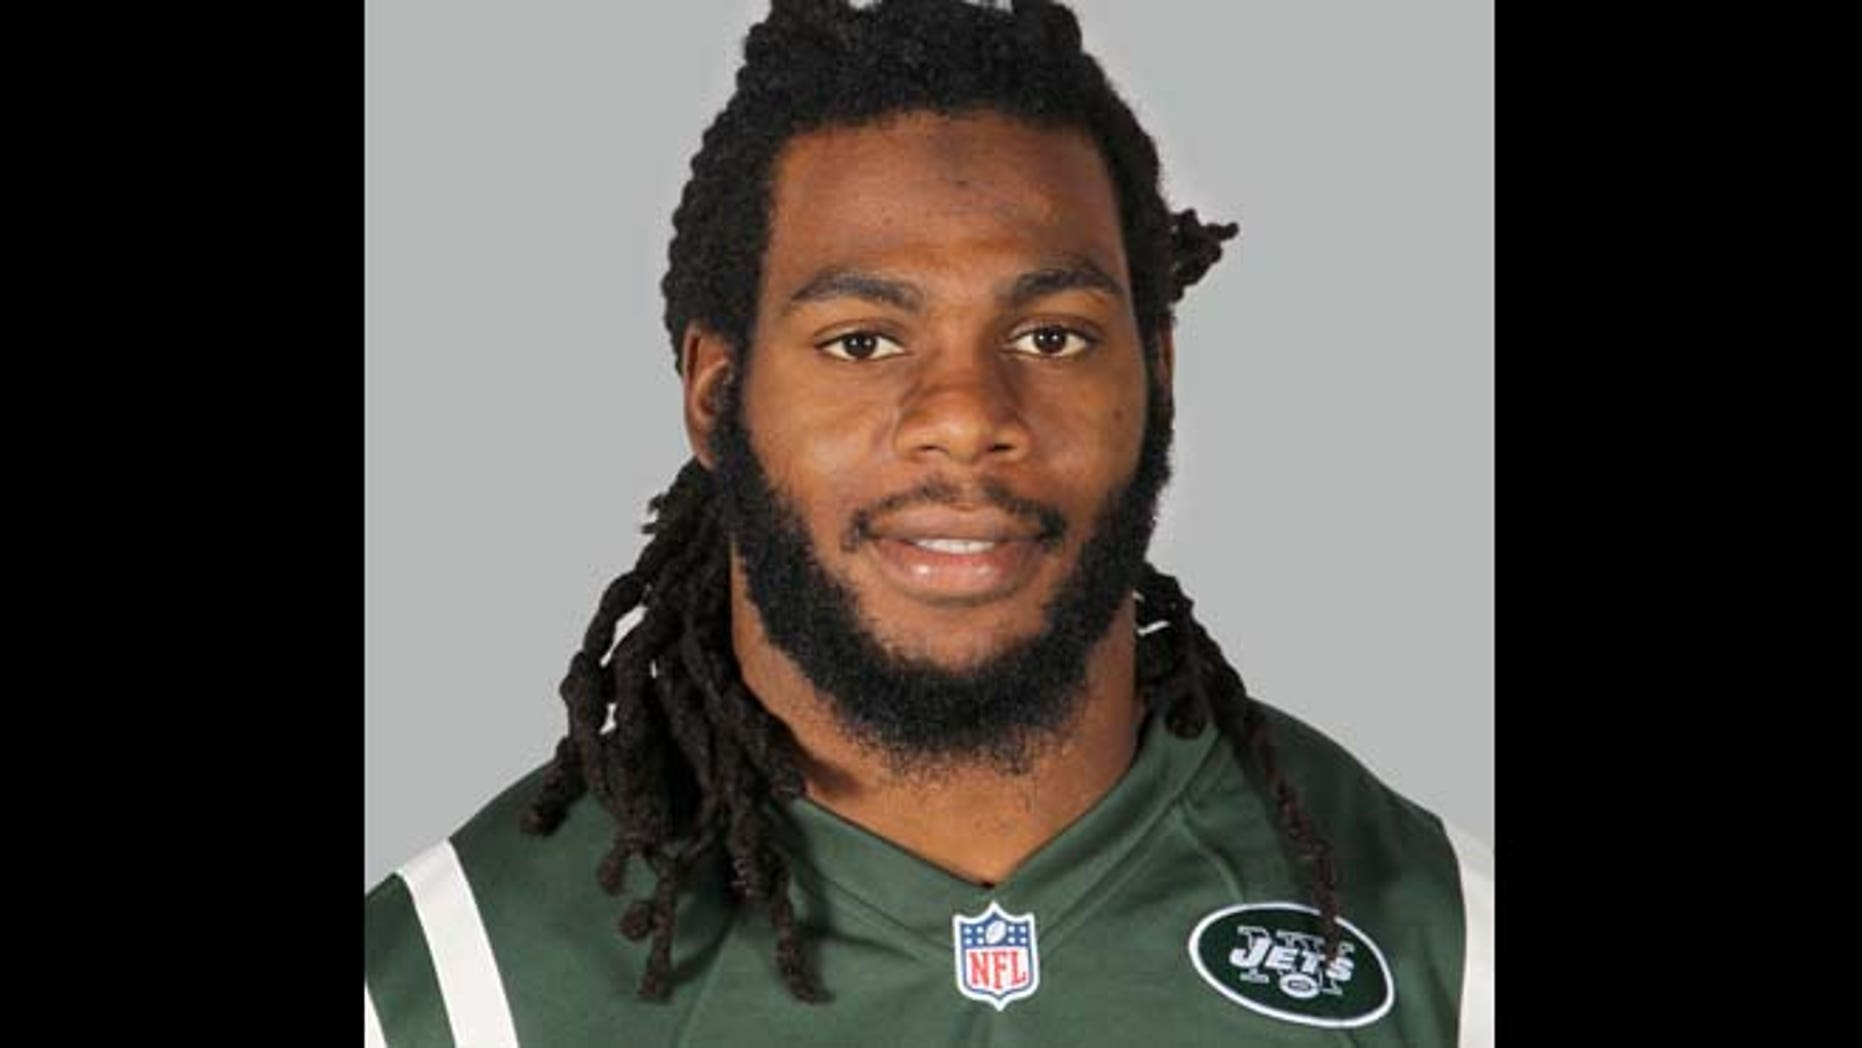 """June 16, 2014: New York Jets linebacker Jermaine Cunningham in Forham Park, N.J. When Cunningham appears in a New Jersey courtroom, he'll be the most recognizable defendant yet facing charges over """"revenge porn."""""""